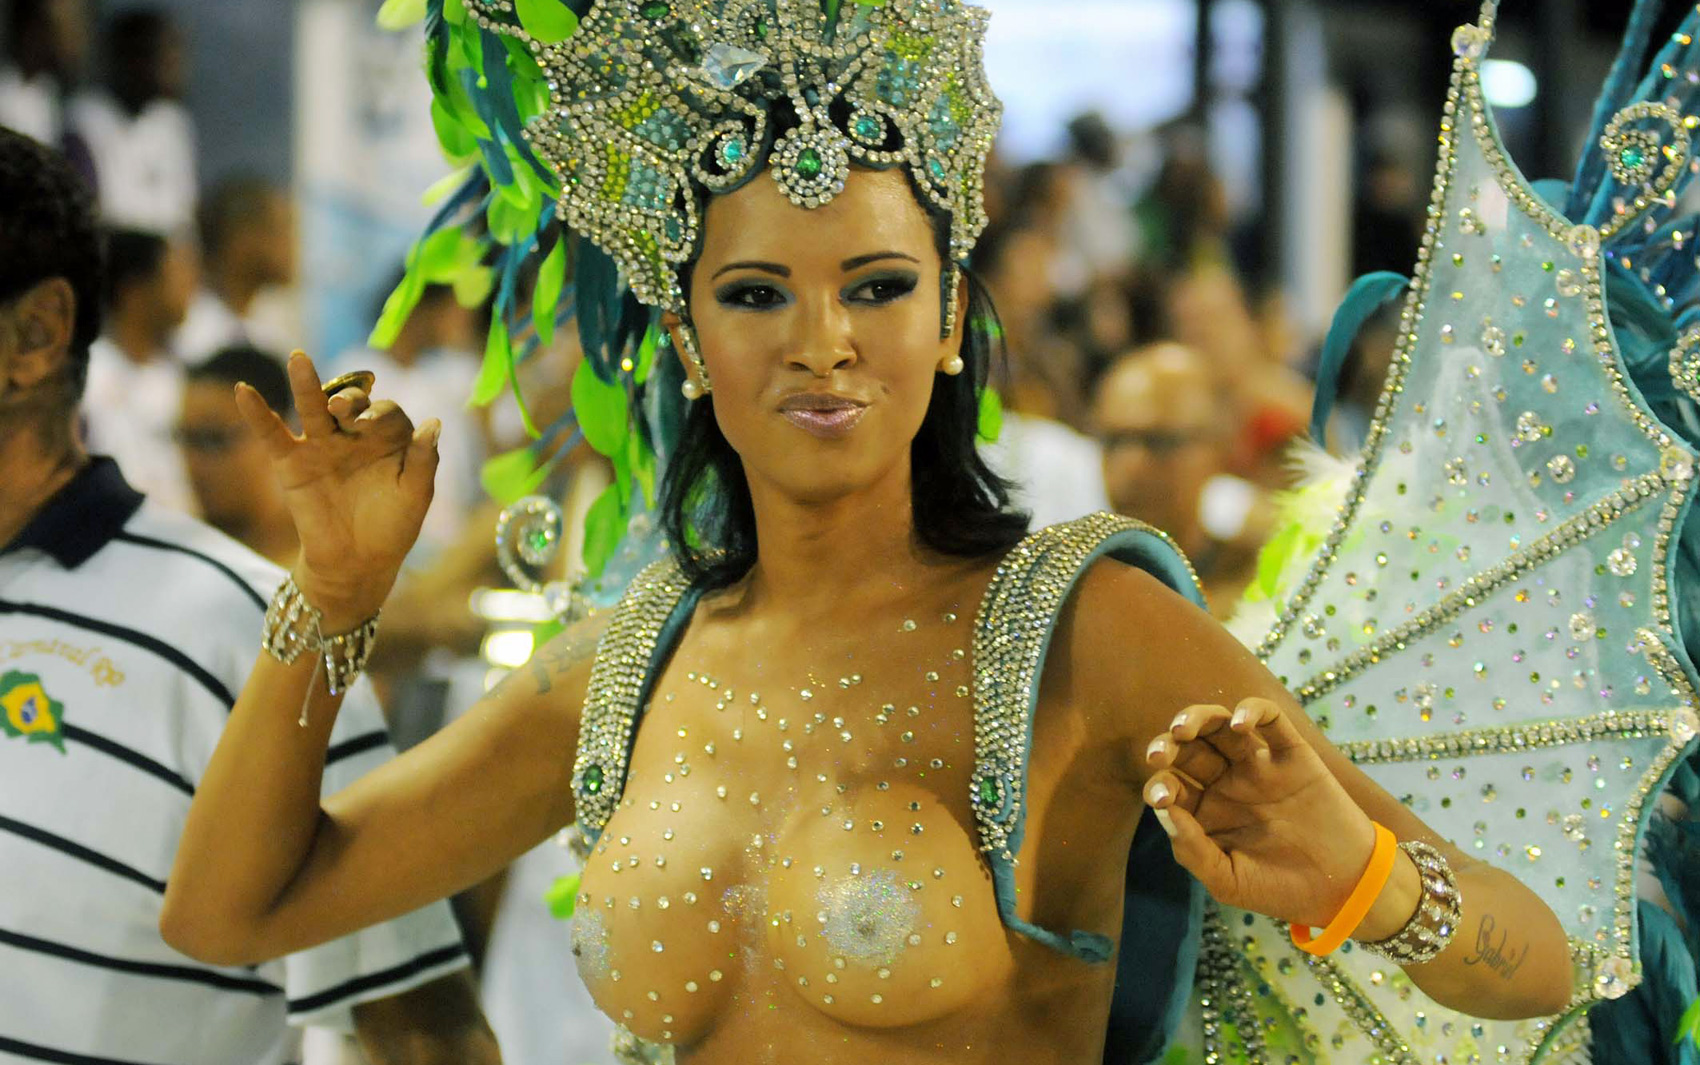 Ariadna Thalia da Silva Arantes representing the Escola de Samba Unidos da Vila Santa Tereza.  G1 Globo